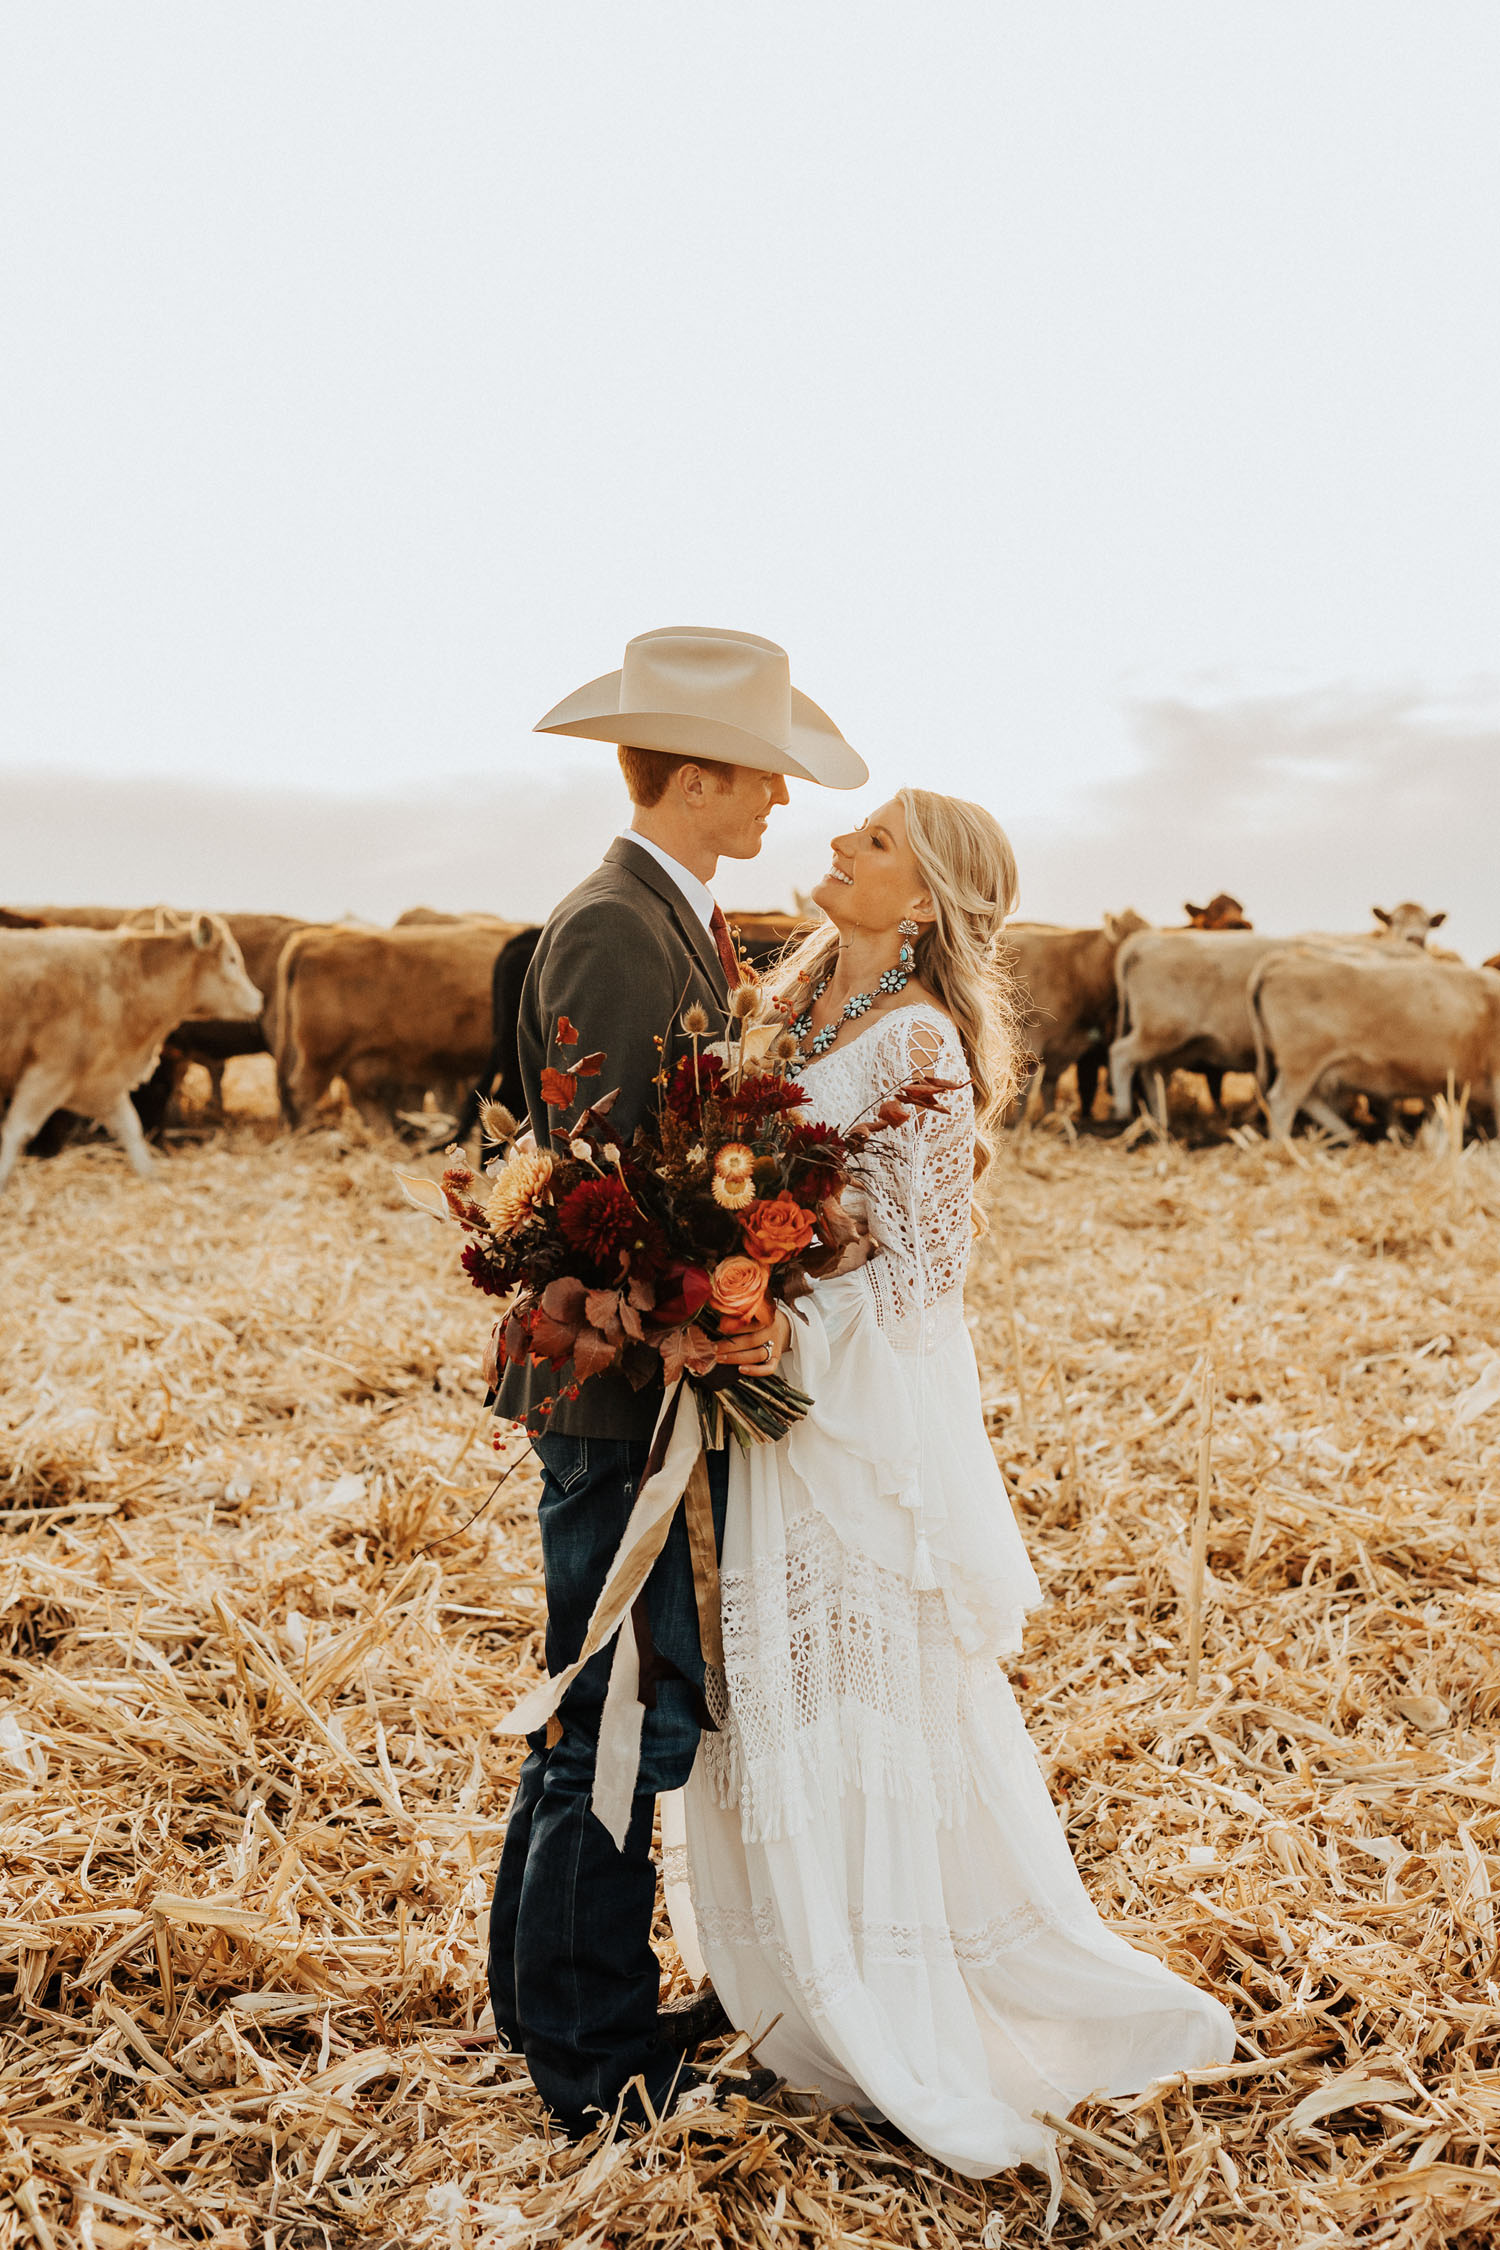 boho bride and groom on a cattle ranch